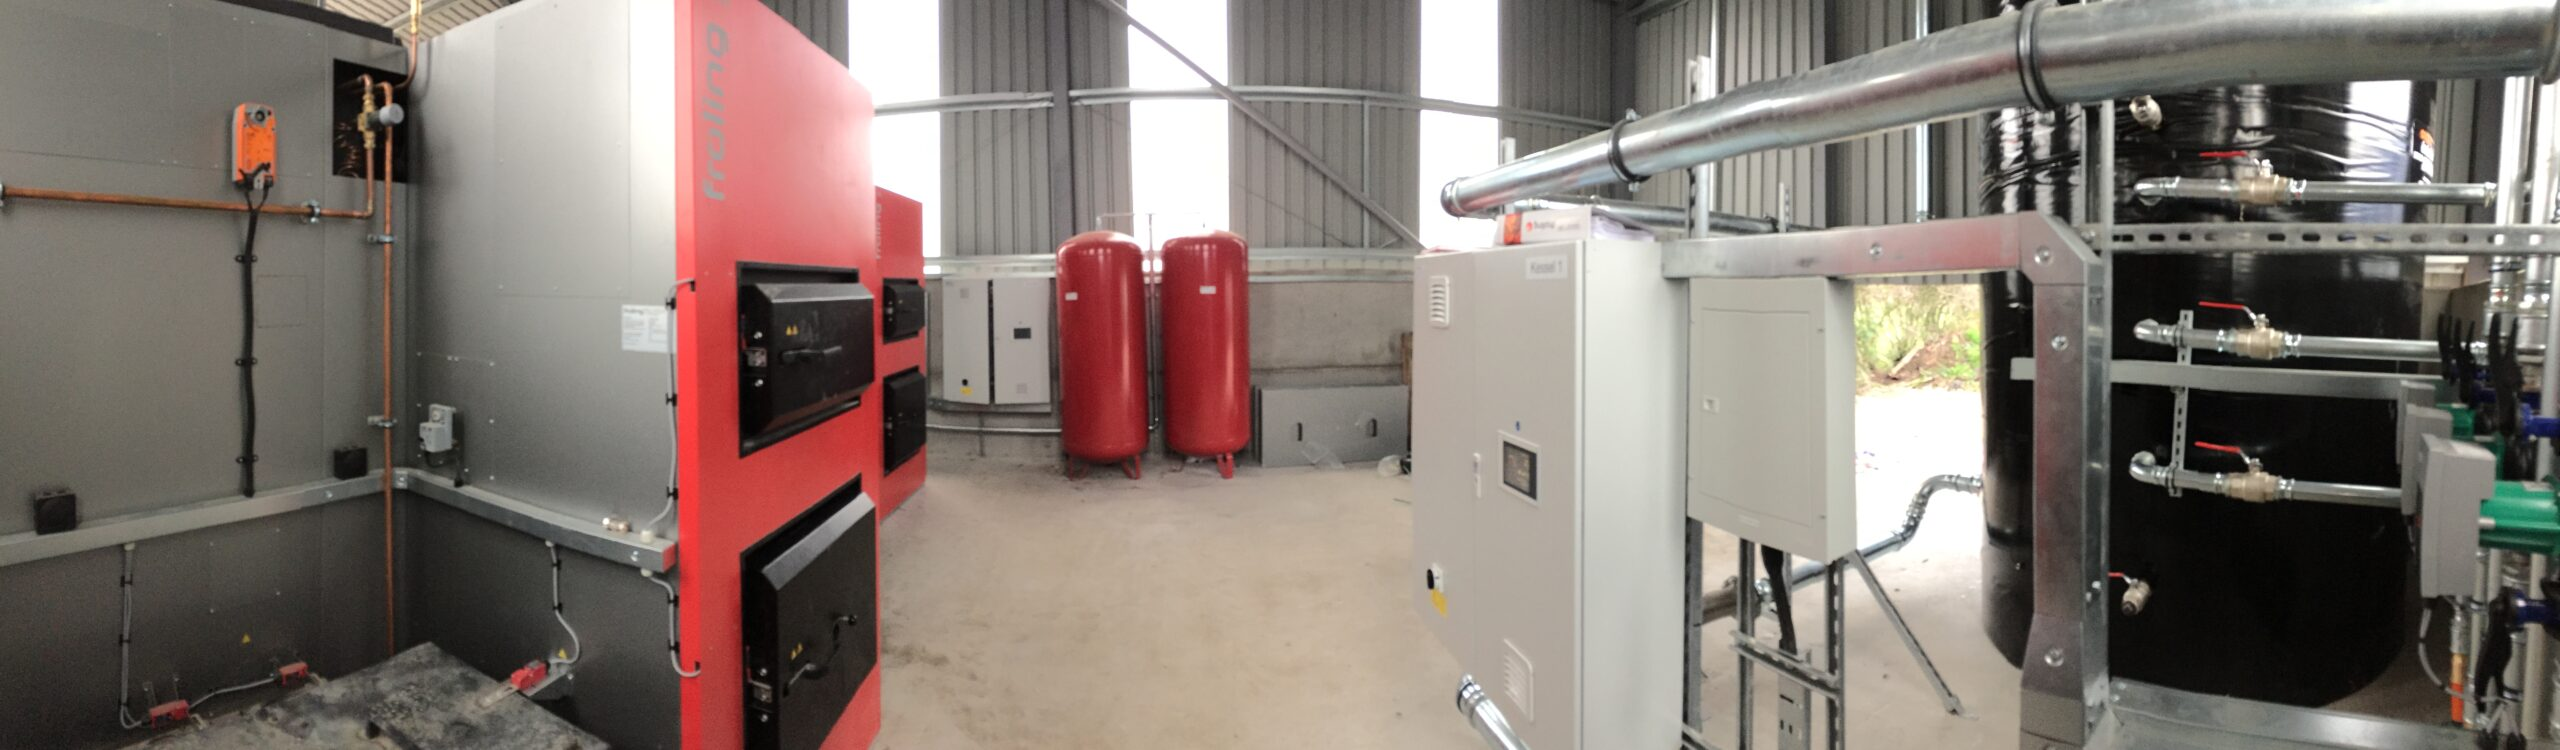 1MW biomass boiler heating system poultry farm wood chip boiler